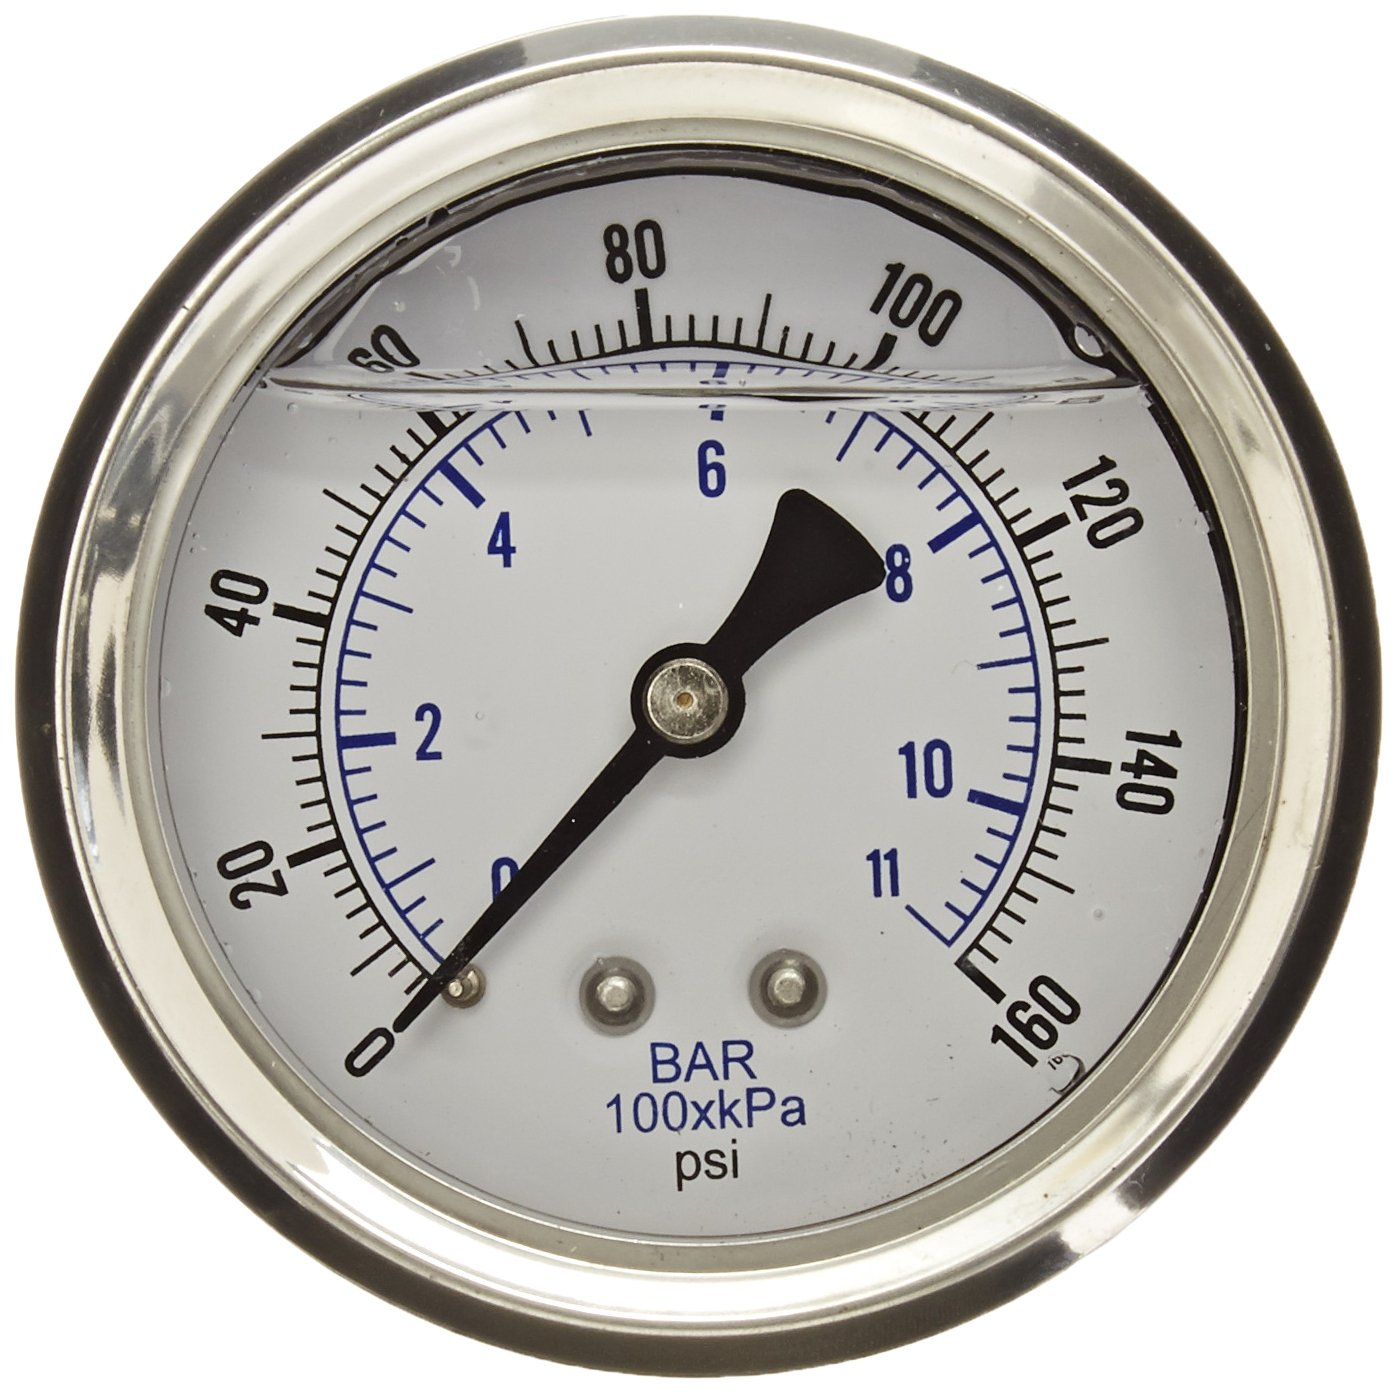 PIC Gauge PRO 202L 254F Glycerin Filled Industrial Center Back Mount Pressure Gauge with Stainless Steel Case Brass Internals Plastic Lens 2 1 2 Dial Size 1 4 Male NPT 0 160 psi